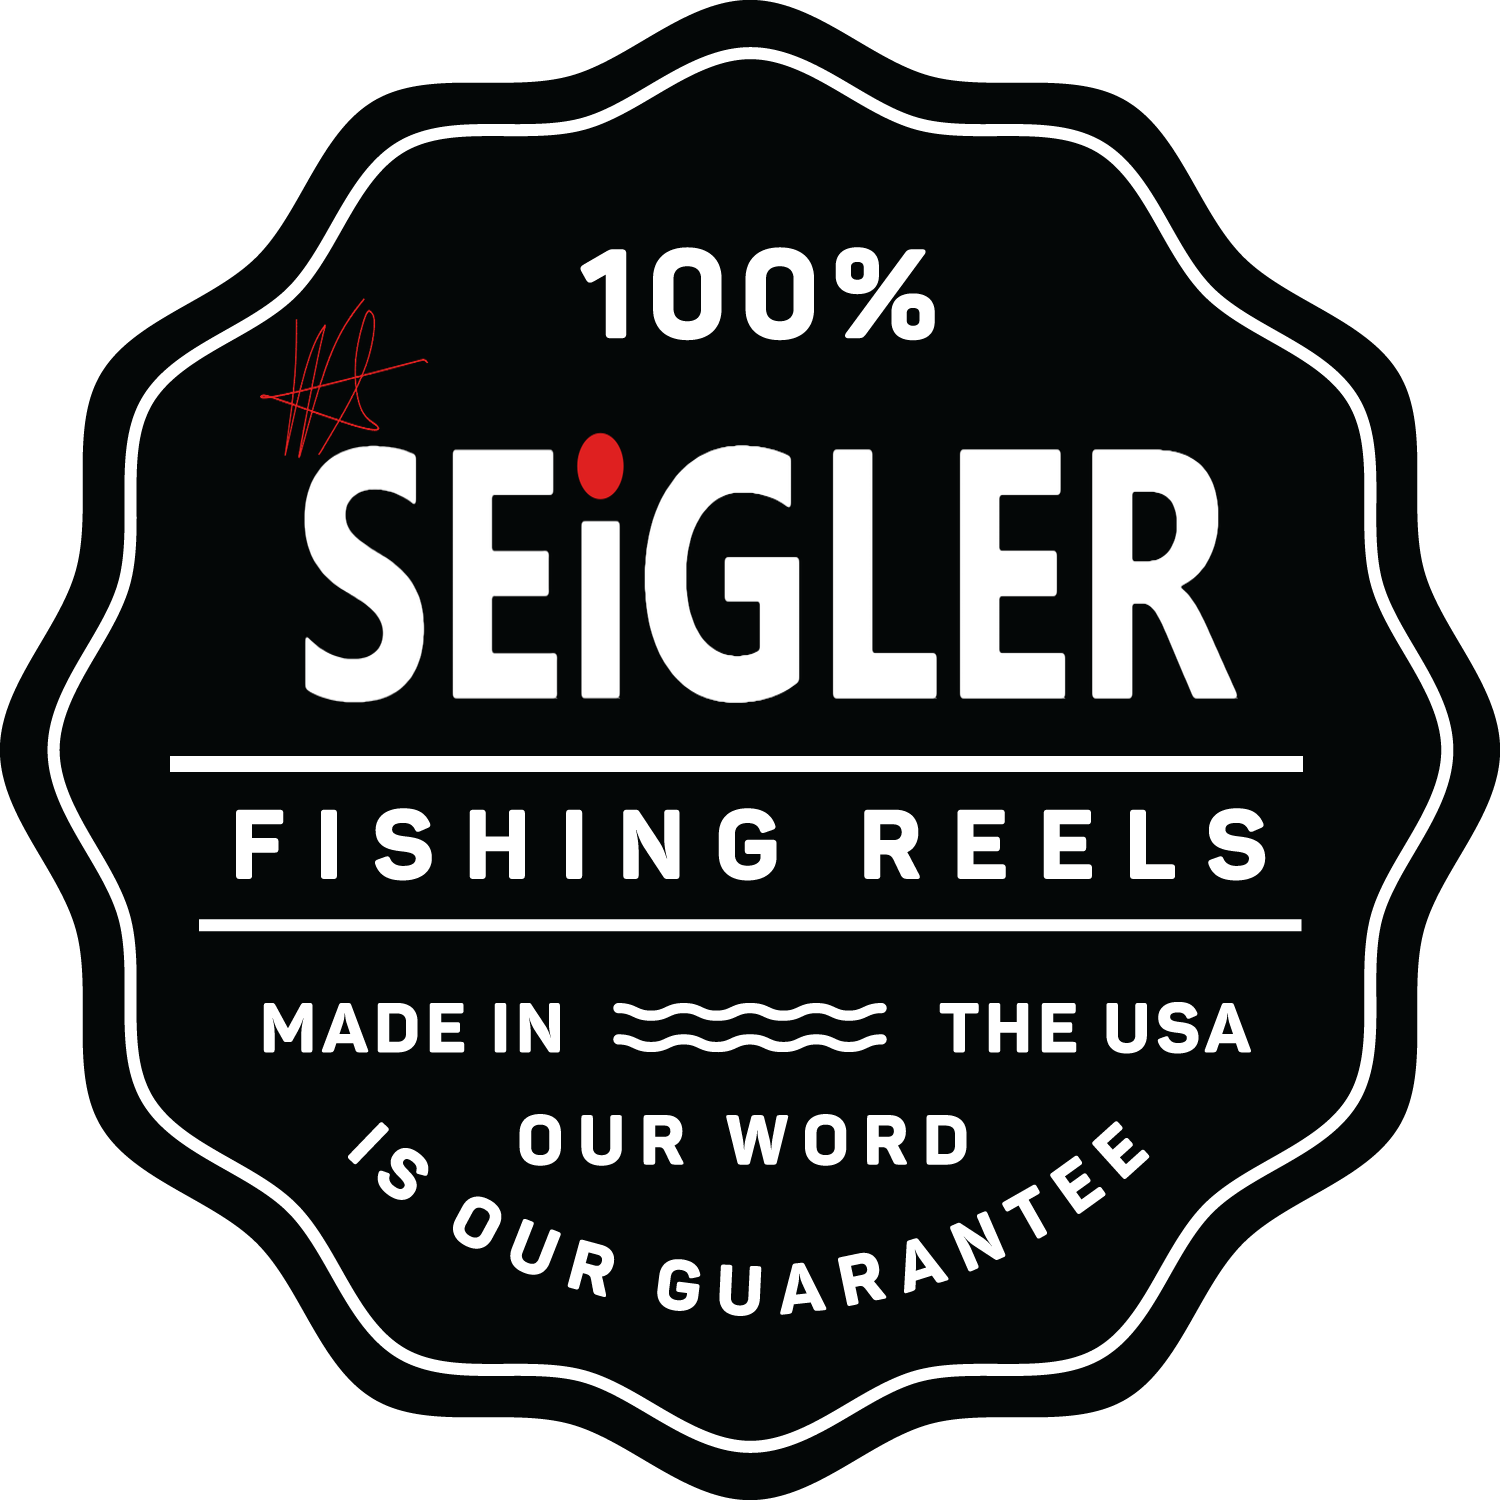 Seigler fishing reels gift card.